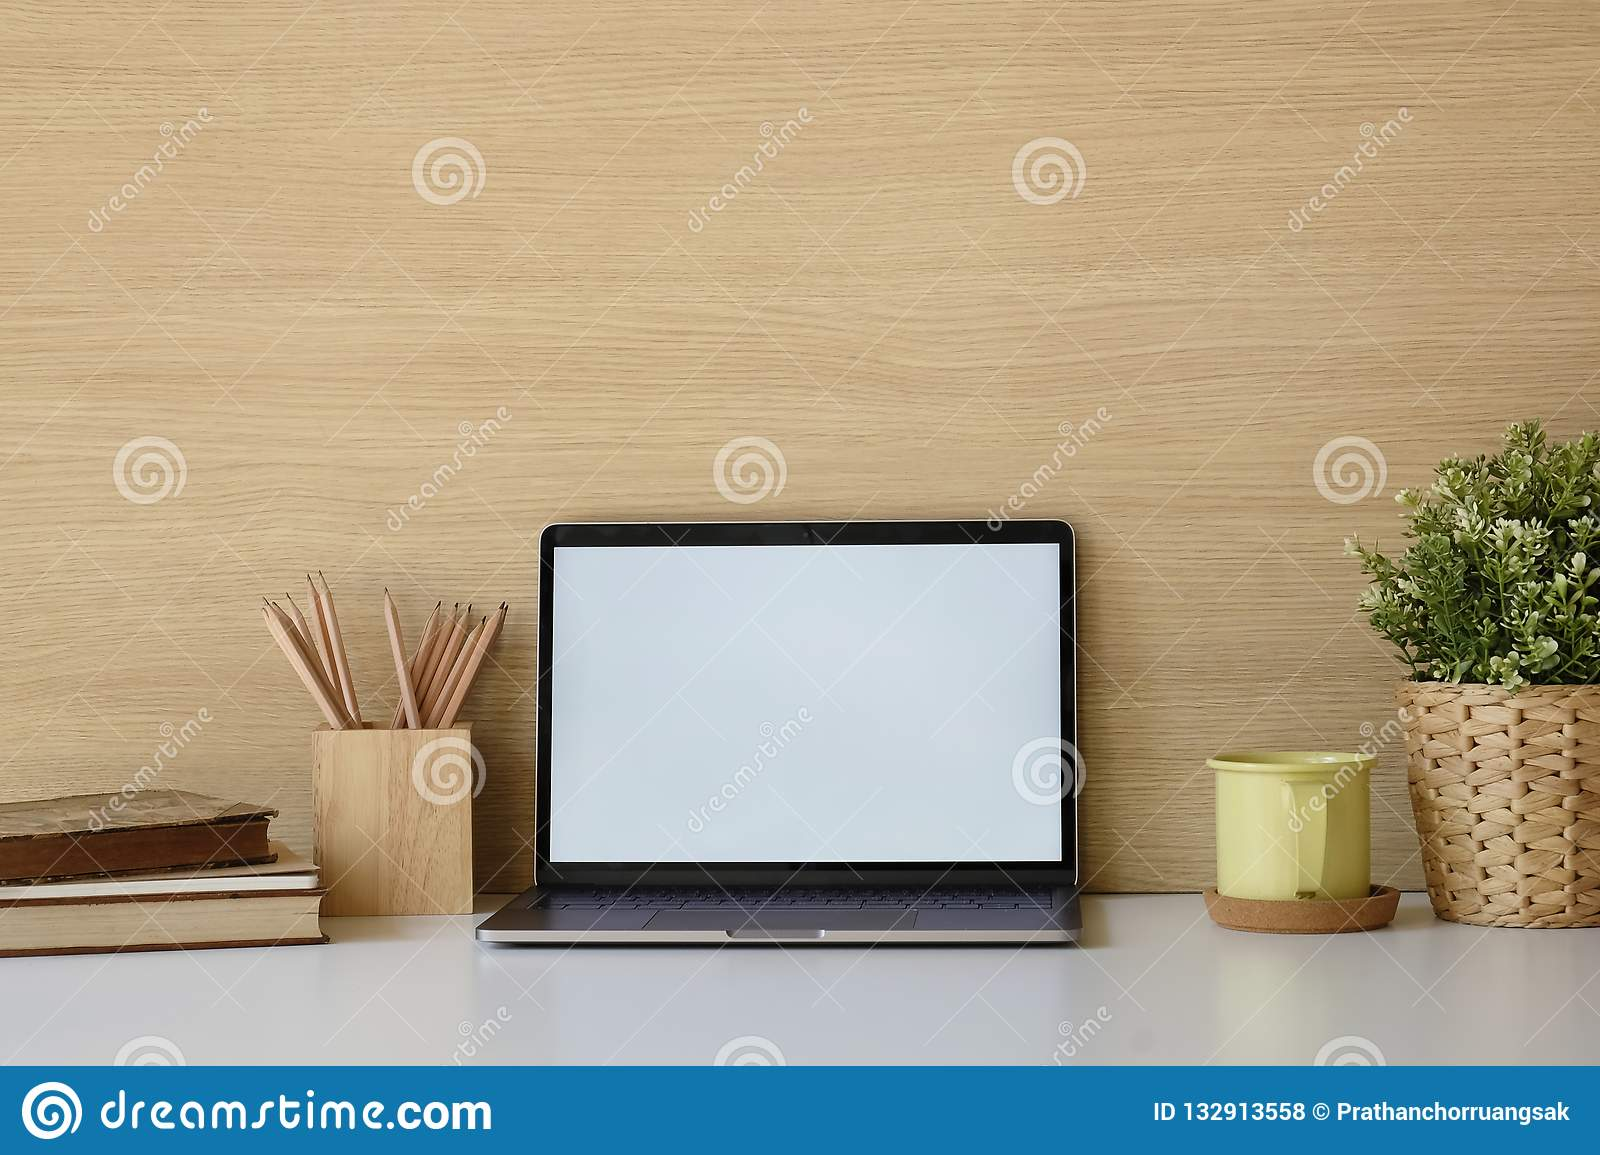 Close Up Mockup Laptop On White Table Books Coffee Pencil In